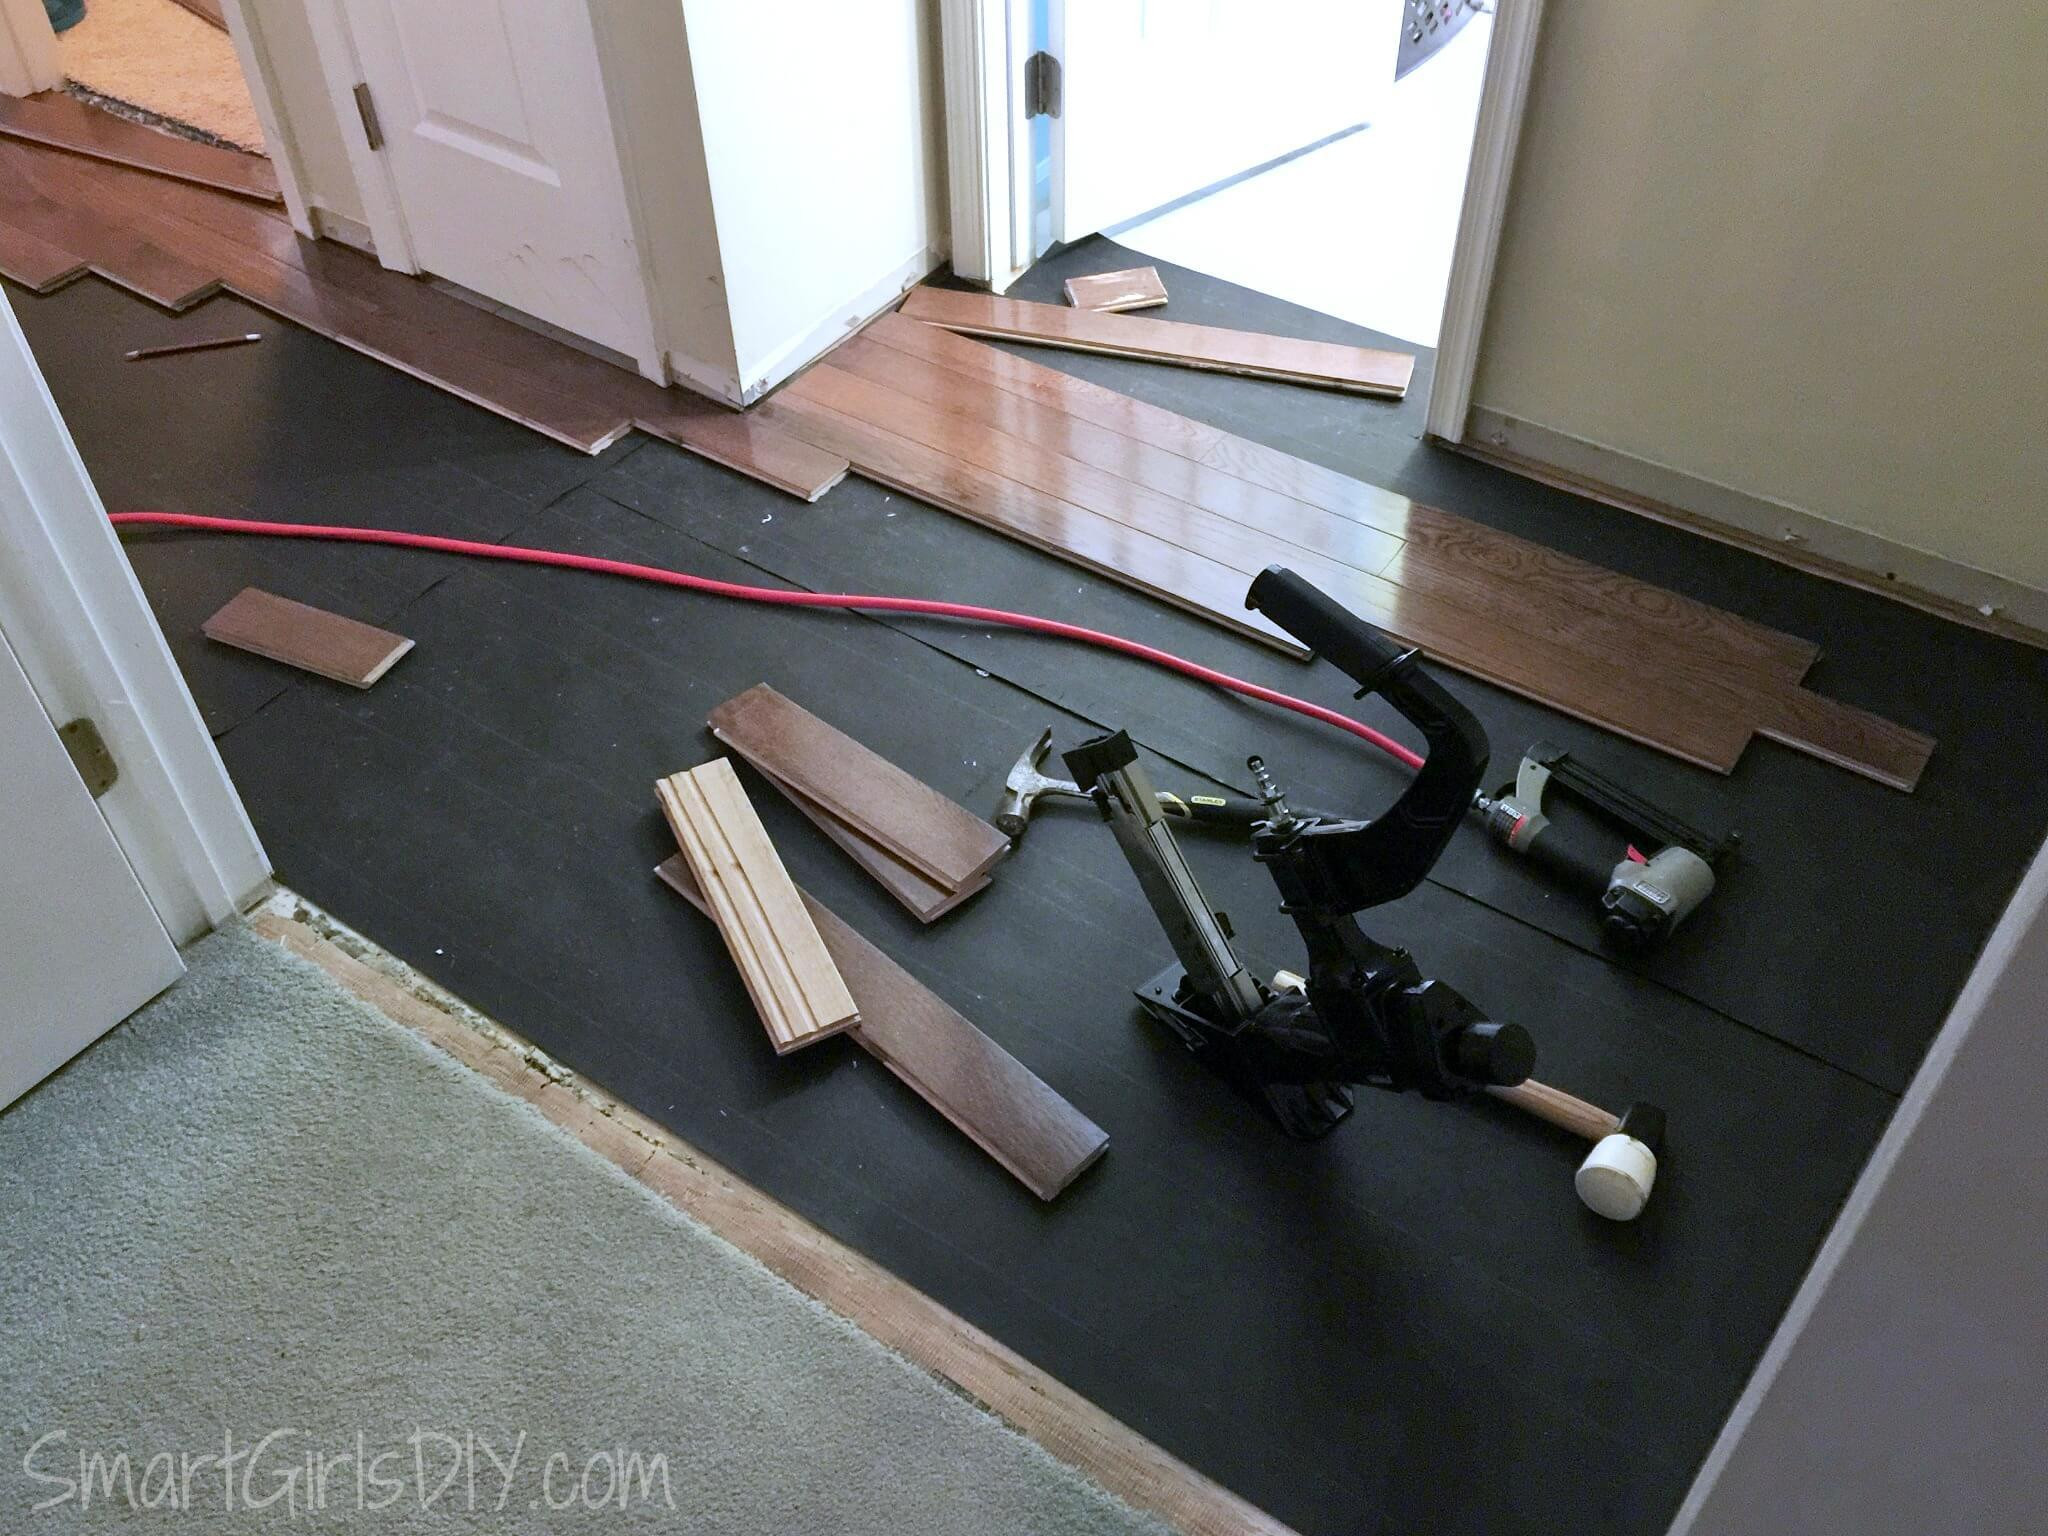 Best Hardwood Floor Steam Cleaner 2015 Of Upstairs Hallway 1 Installing Hardwood Floors Inside Working Backwards to Install Hardwood From Behind